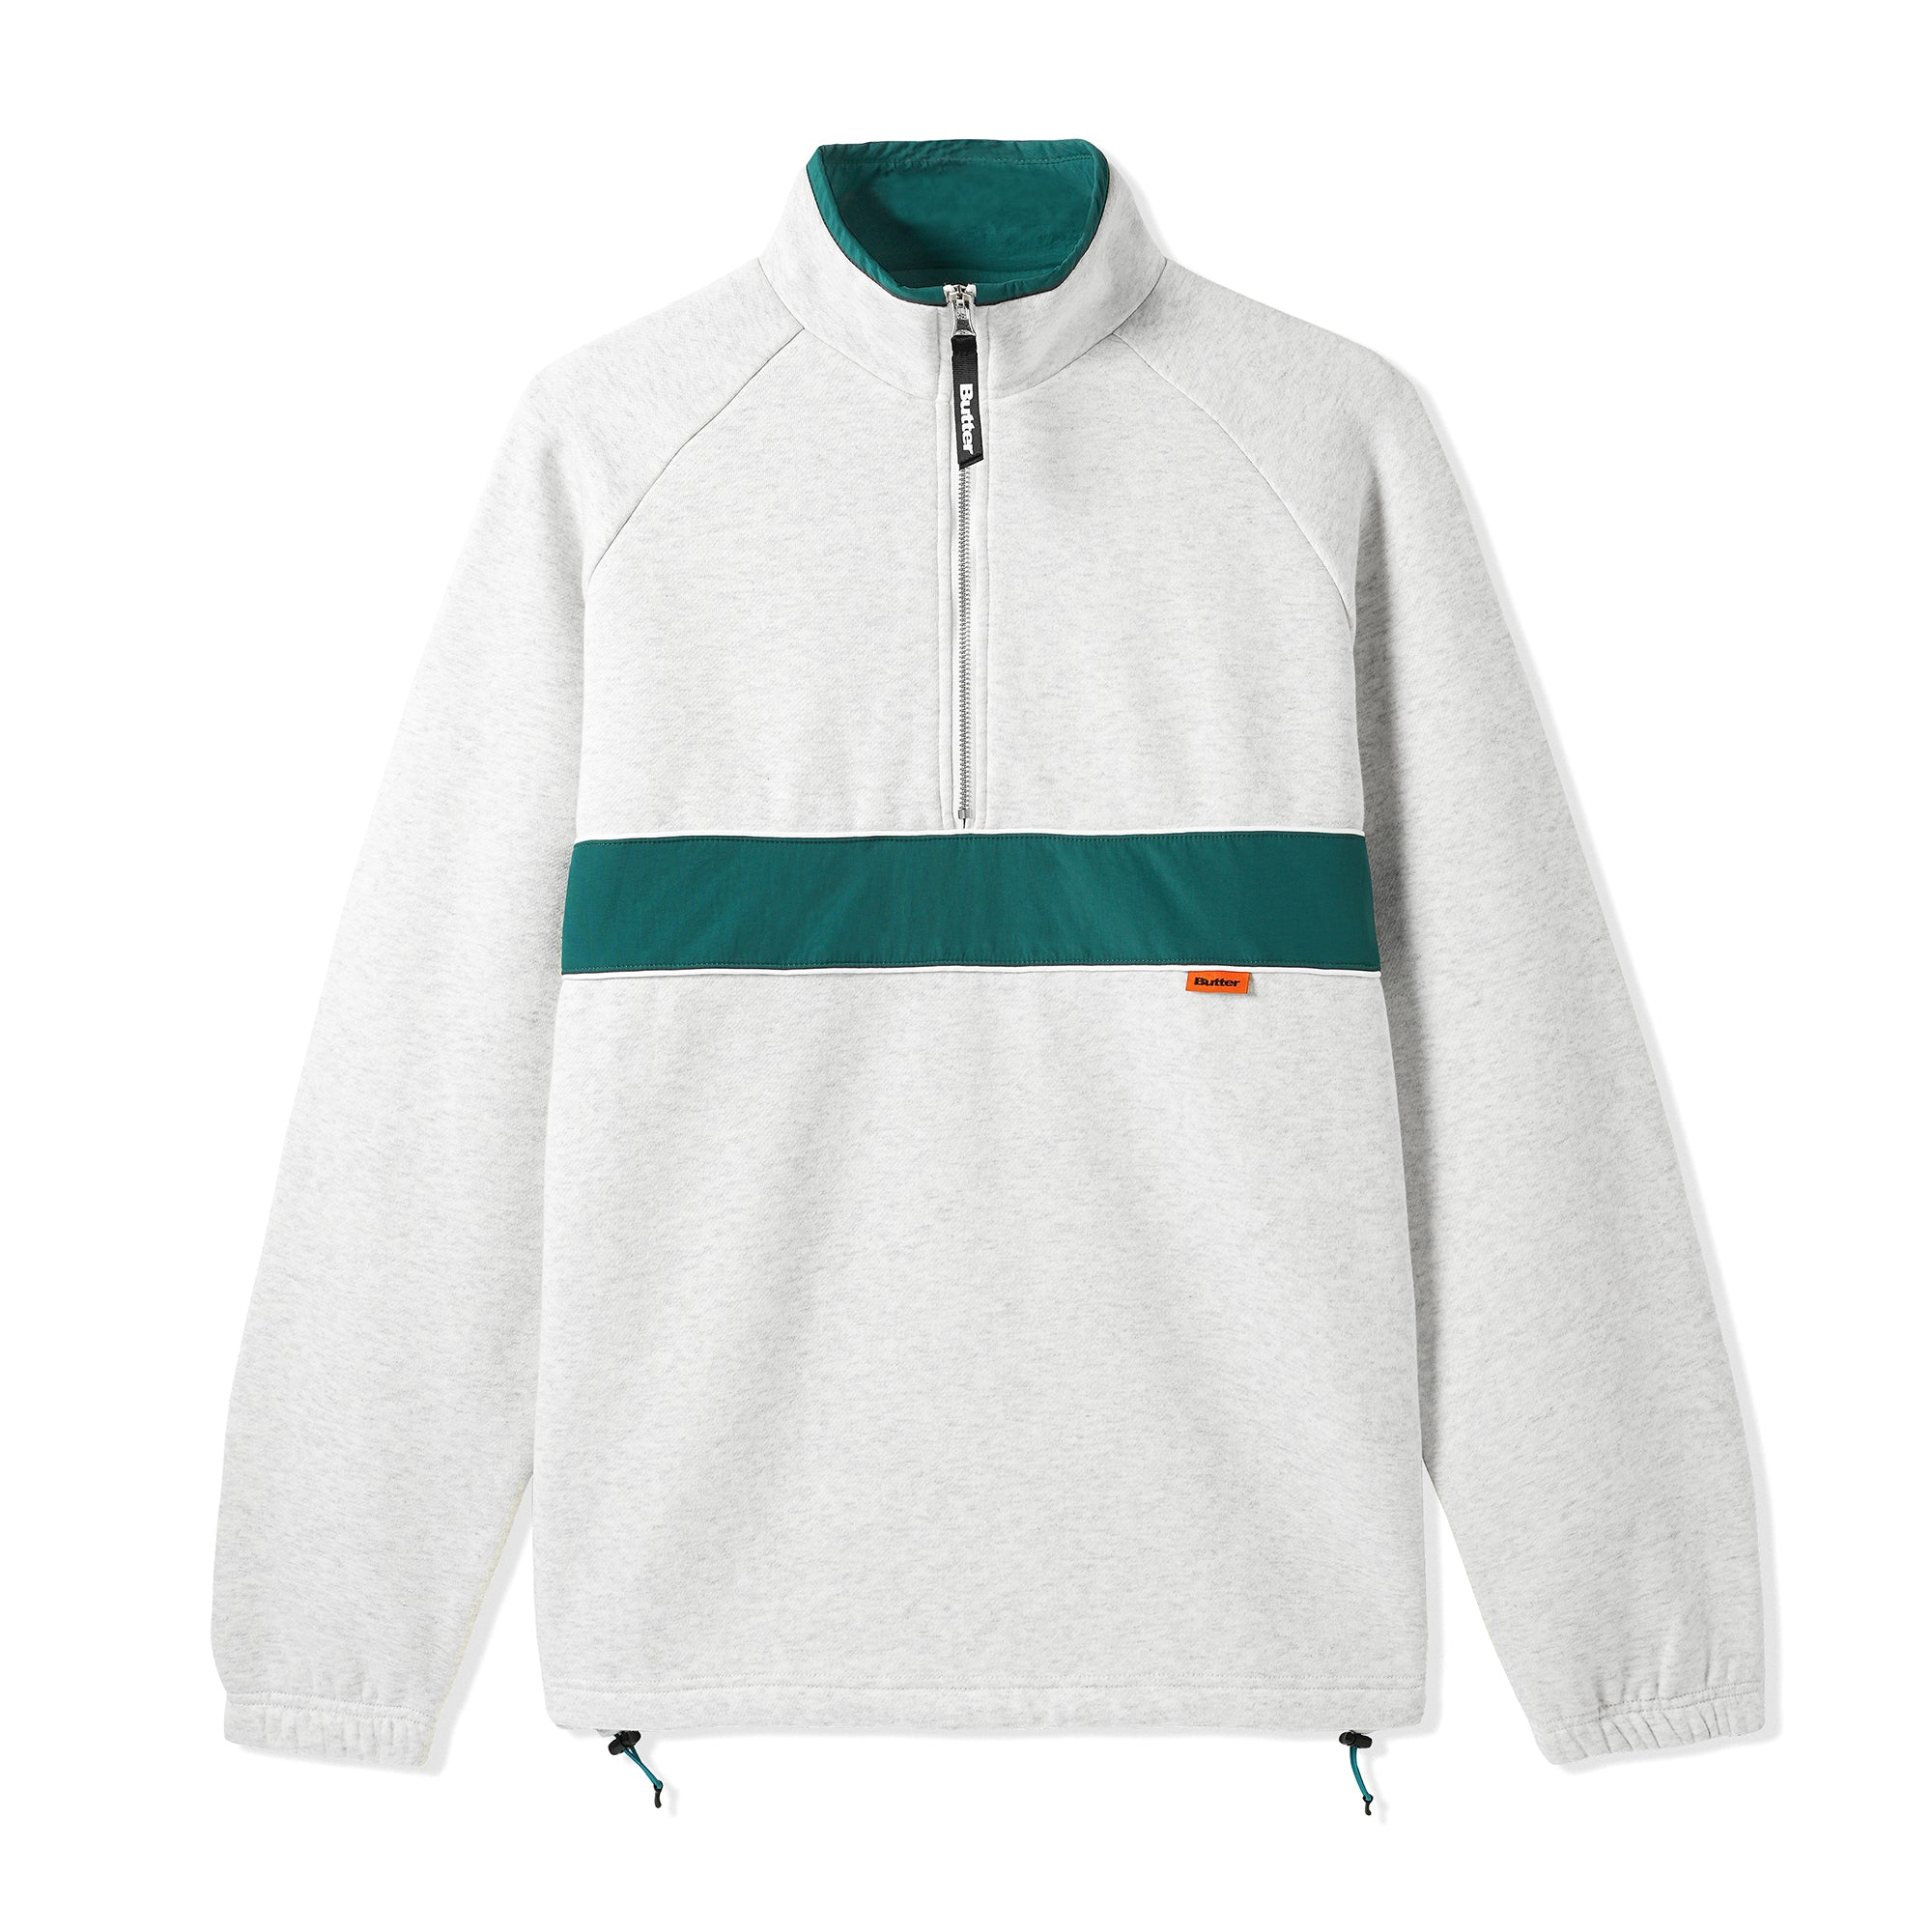 Butter Goods Axis 1/4 Zip Jacket Product Photo #1